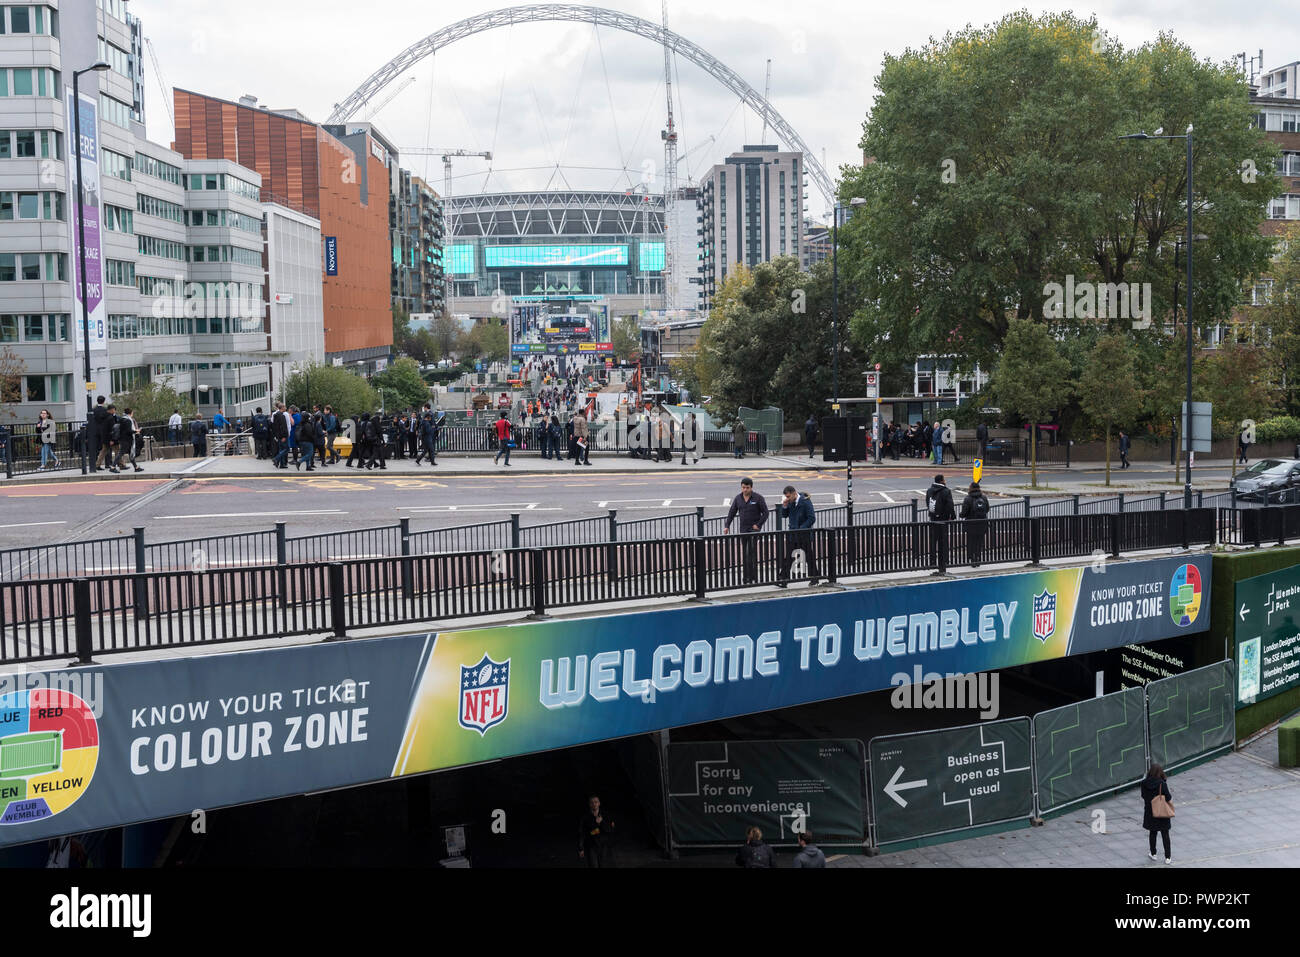 London, UK.  17 October 2018.  A general view of Wembley Stadium as seen from Wembley Park tube station.  The area is currently decorated with NFL branding to promote the current three game series of NFL games at the stadium.  Shahid Khan, owner of Fulham FC and the Jacksonville Jaguars NFL team, has withdrawn his £600m offer to buy the stadium, amidst reports that he did not feel that he would receive sufficient support from The Football Association (FA).  The FA was due to vote on the potential sale on October 24.  Credit: Stephen Chung / Alamy Live News - Stock Image